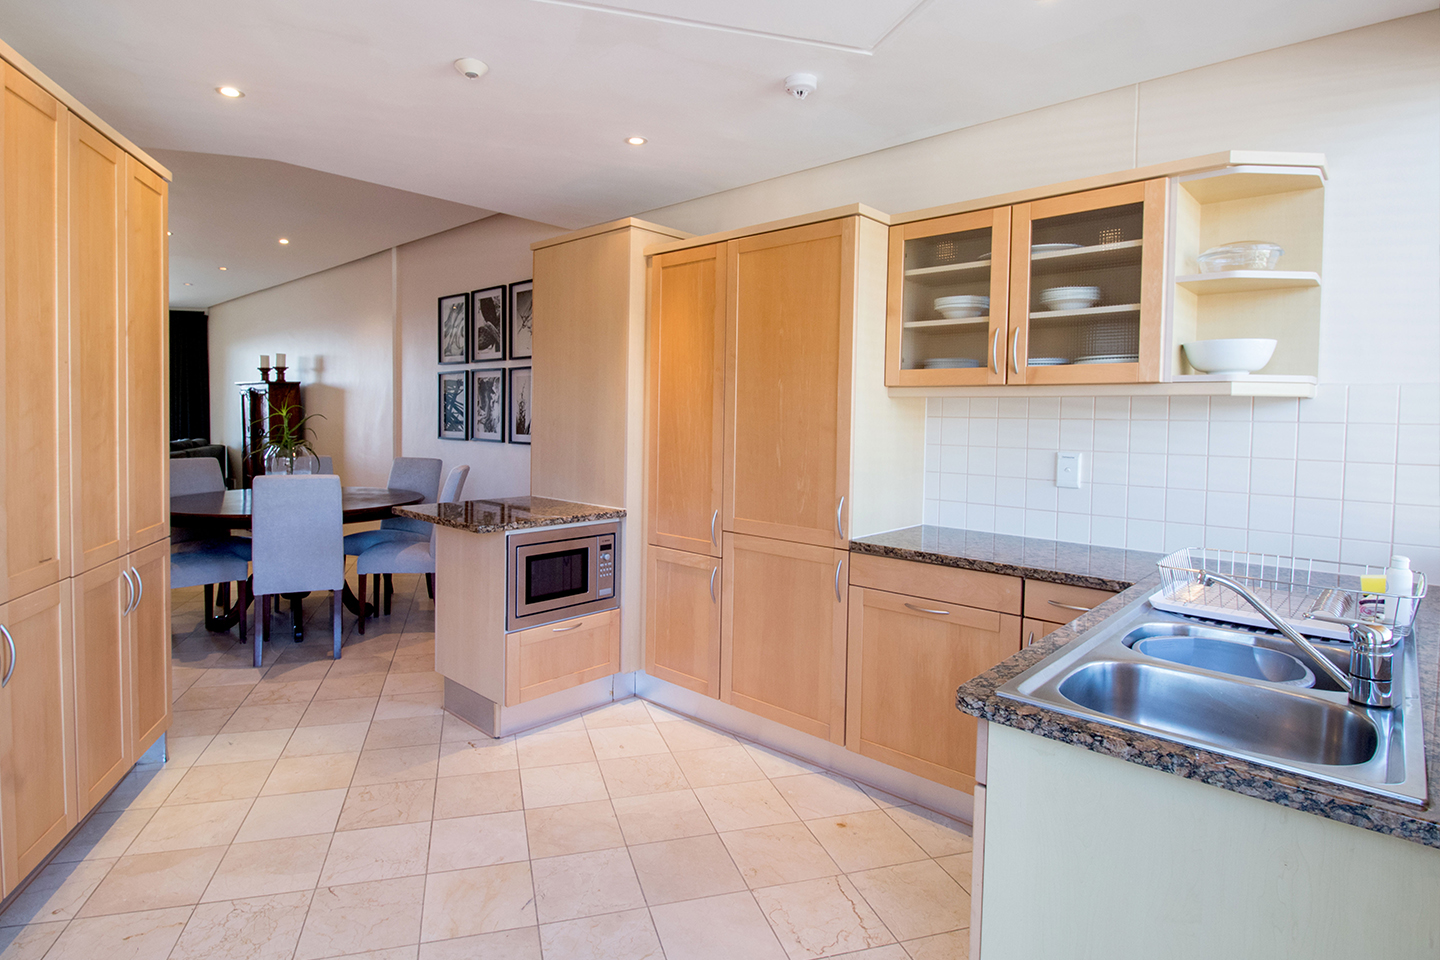 Kitchen area in Waterfront Village, Waterfront, Cape Town - Citybase Apartments